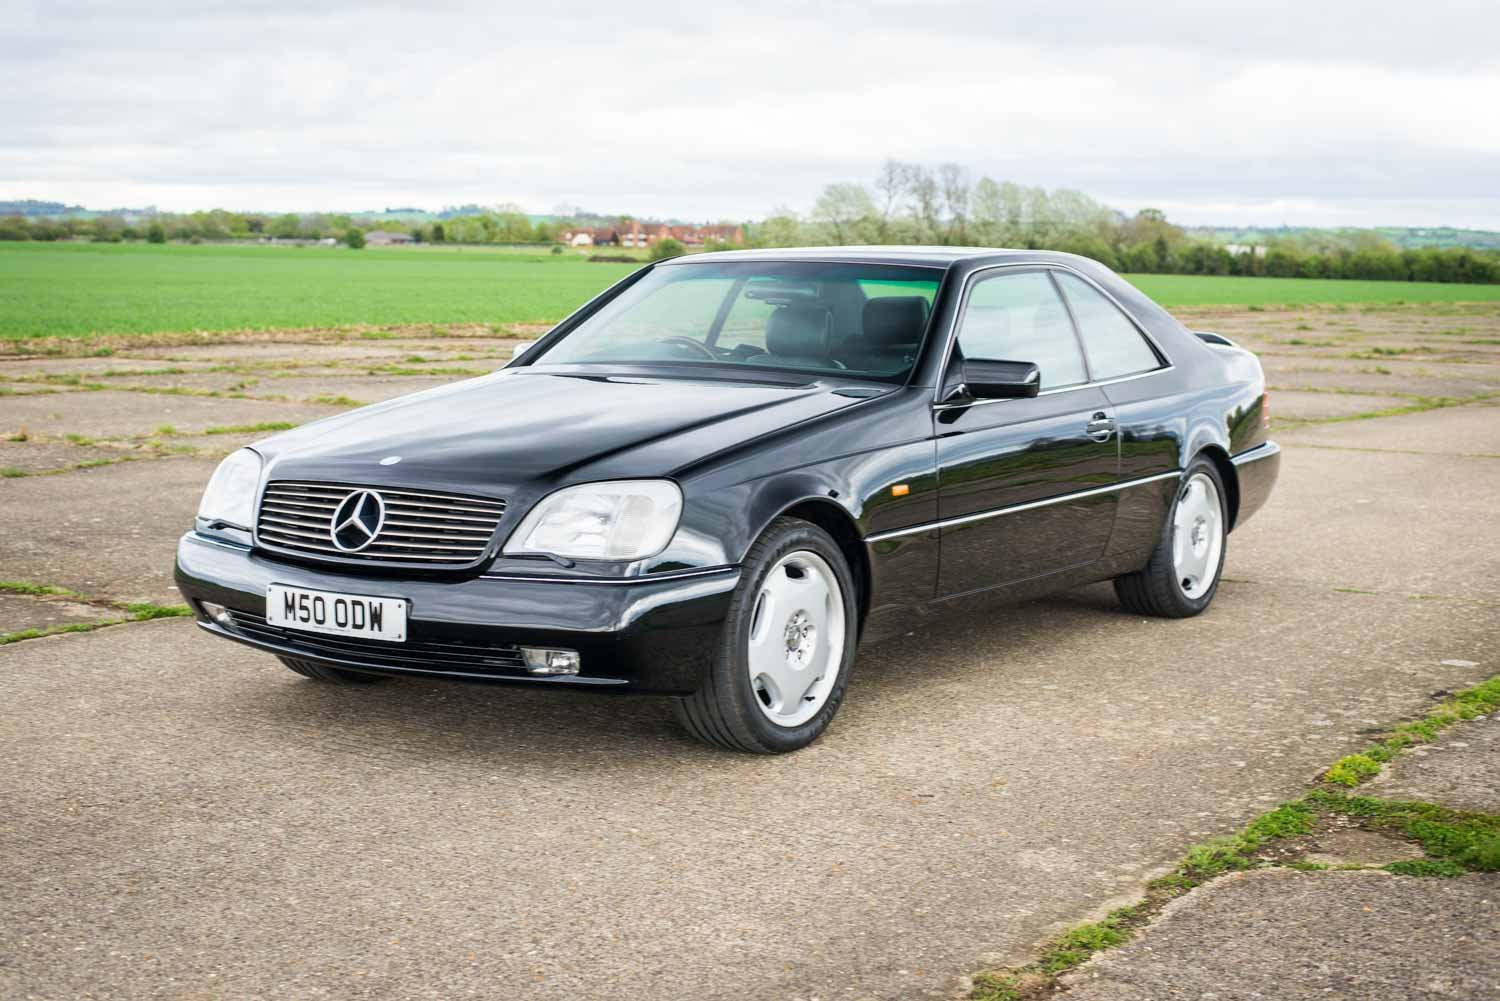 1995 Mercedes-Benz W140 S500 Coupe - 95K - 3 Owners - Lorinser SOLD (picture 2 of 6)